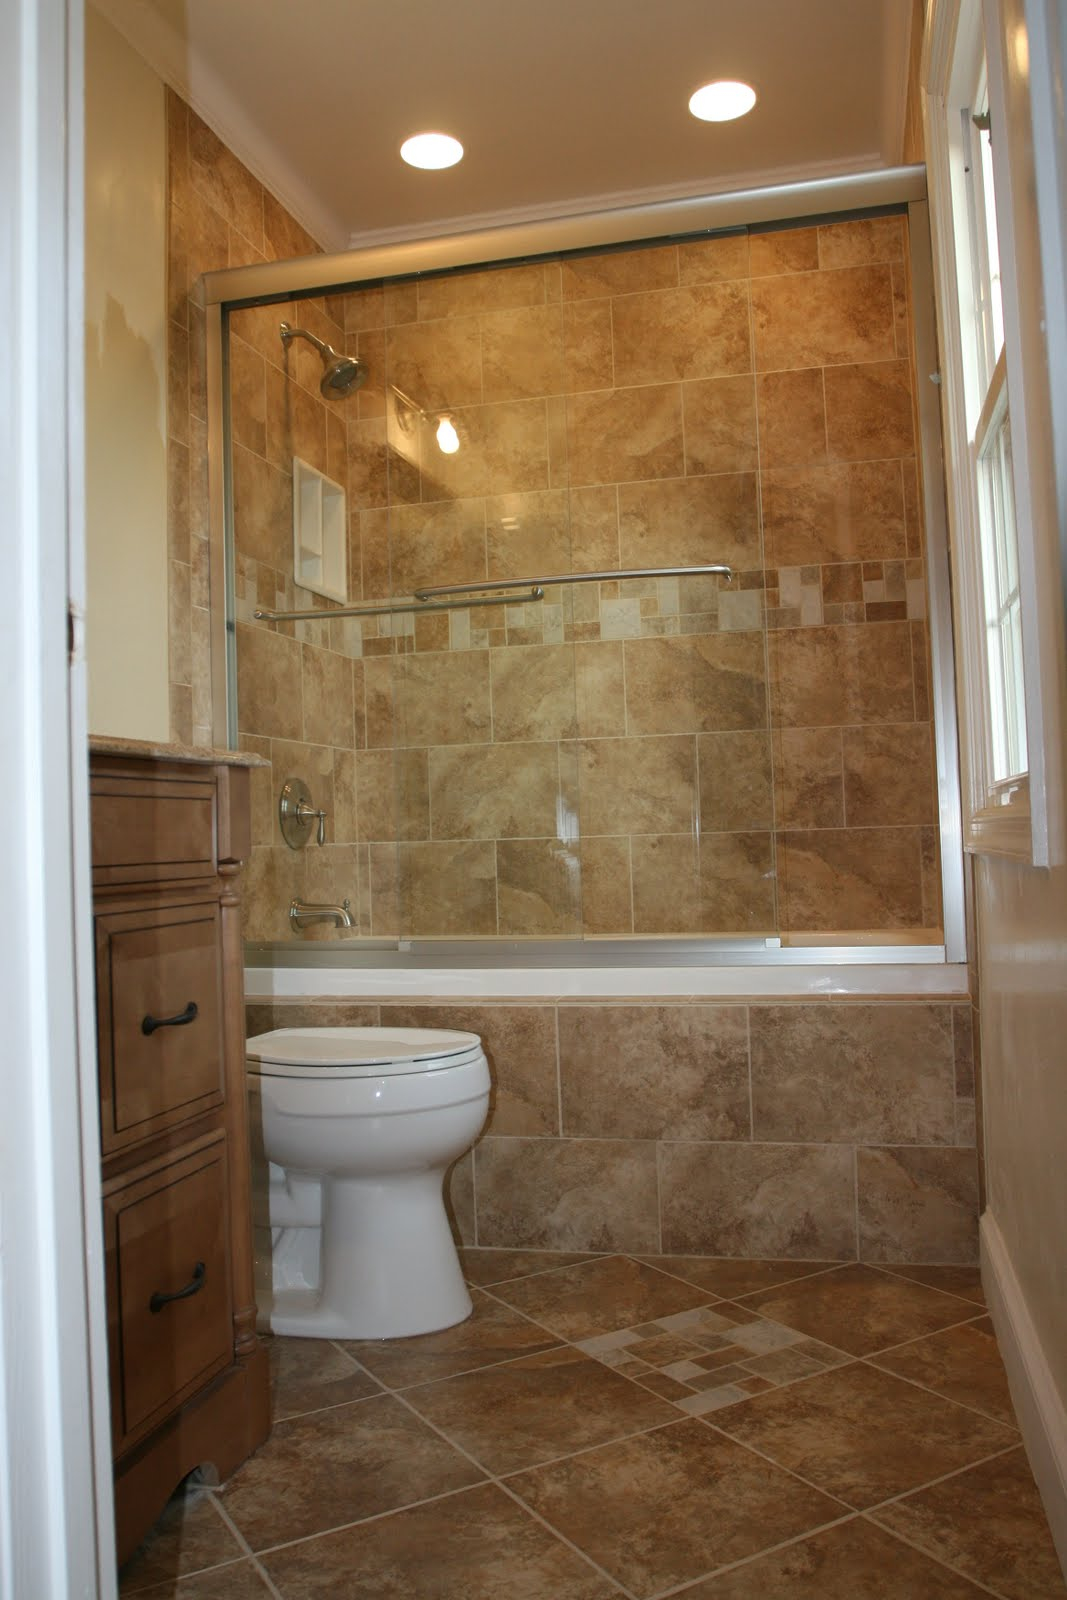 Bathroom remodeling design ideas tile shower niches for Bathroom remodel gallery